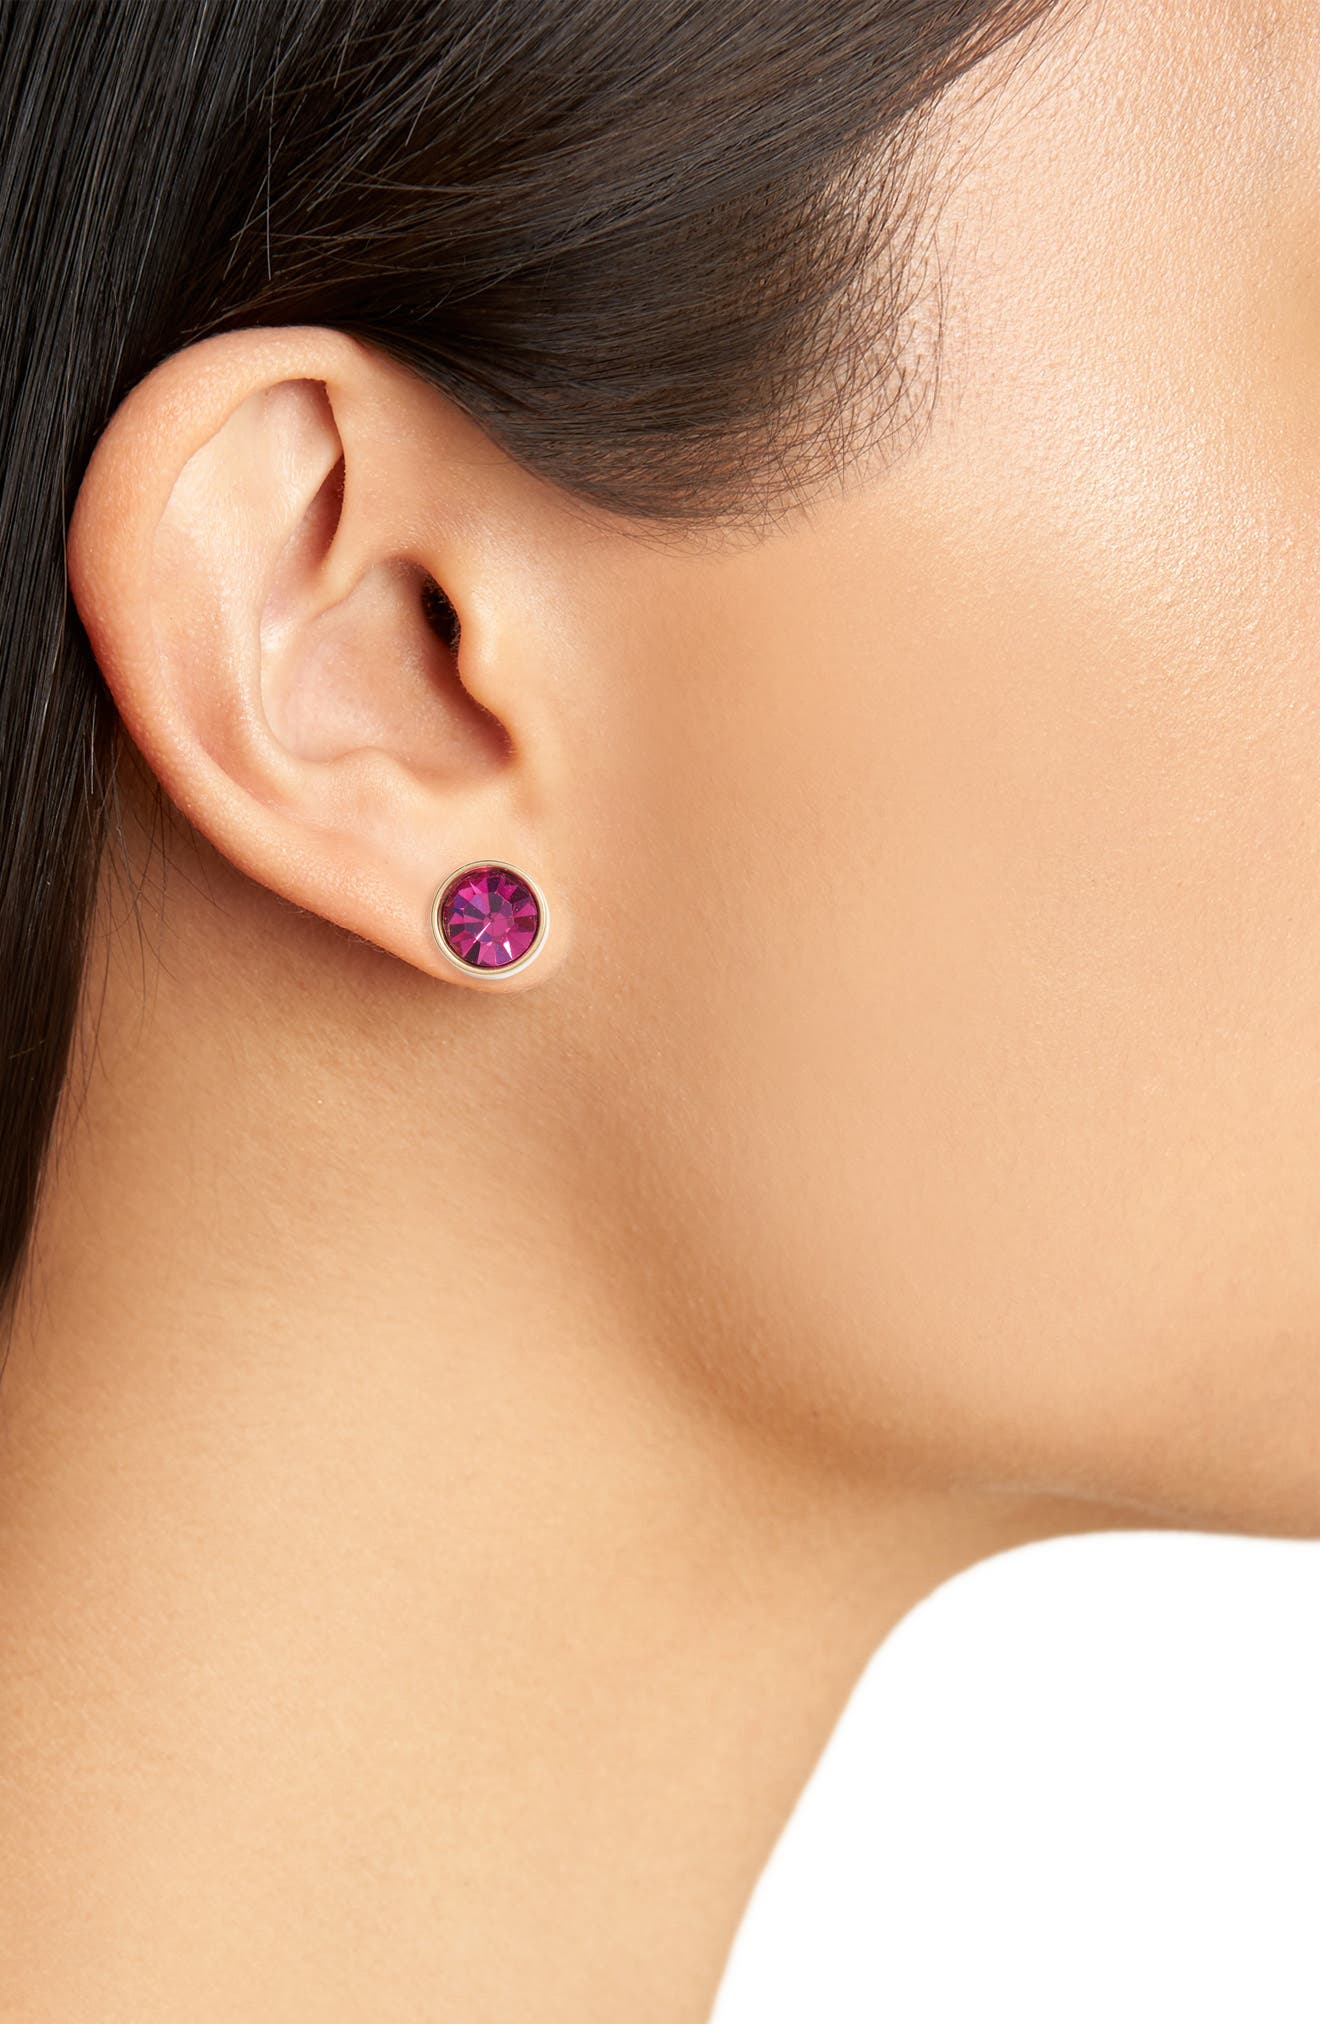 Bezel Set Stud Earrings,                             Alternate thumbnail 2, color,                             FUCHSIA/ GOLD